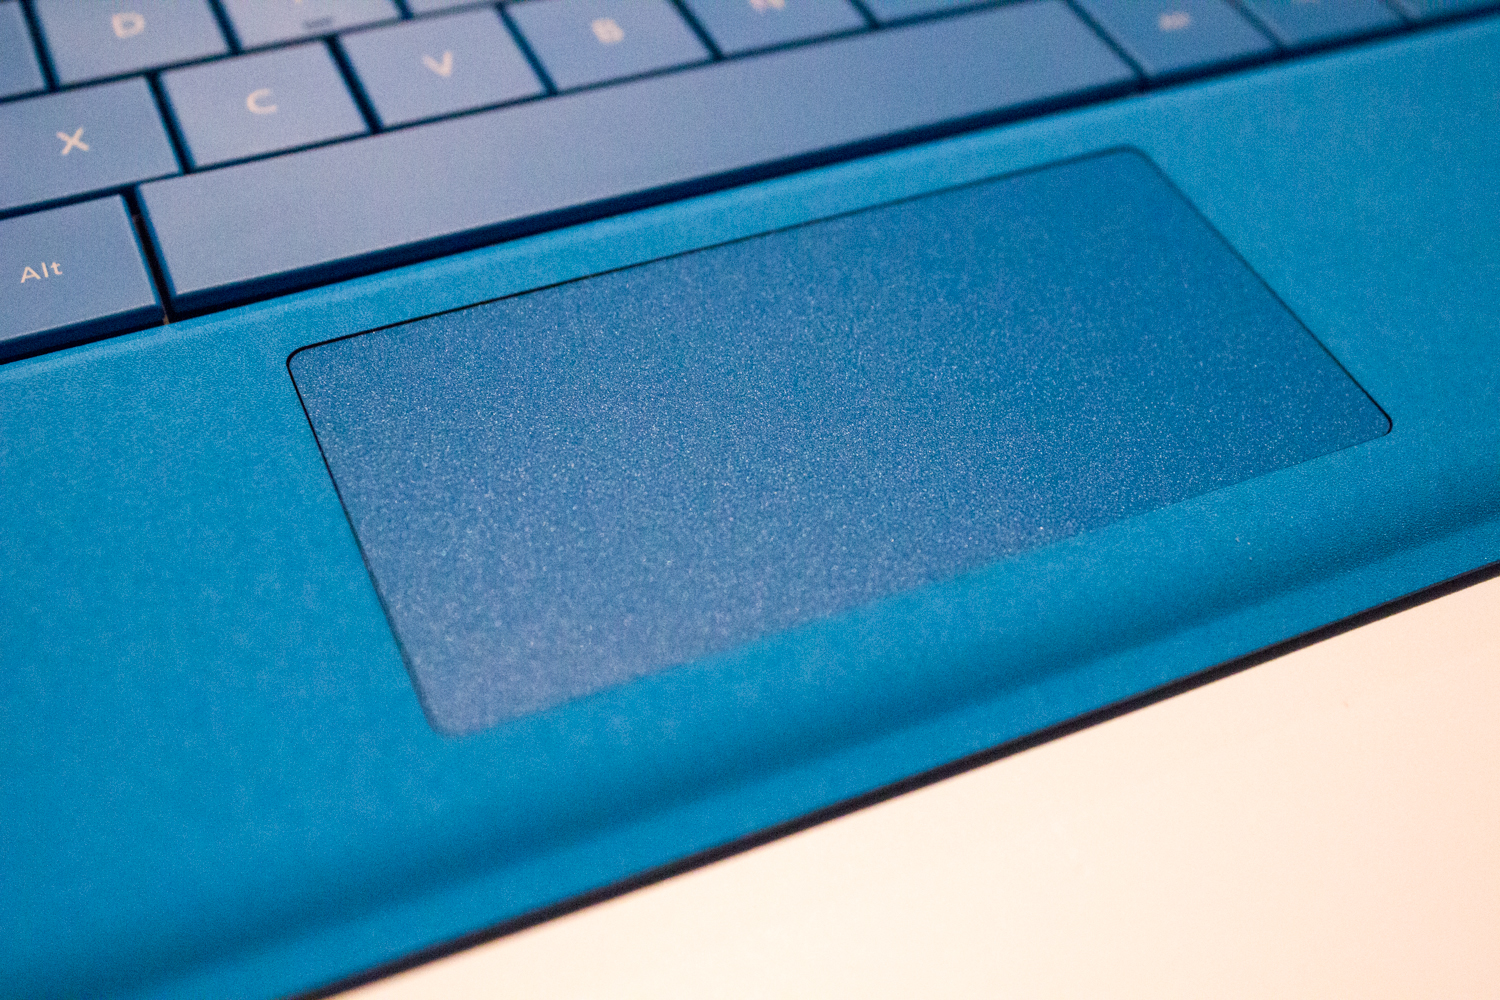 The new and expanded trackpad, which is extra wide but doesn't appear much taller.